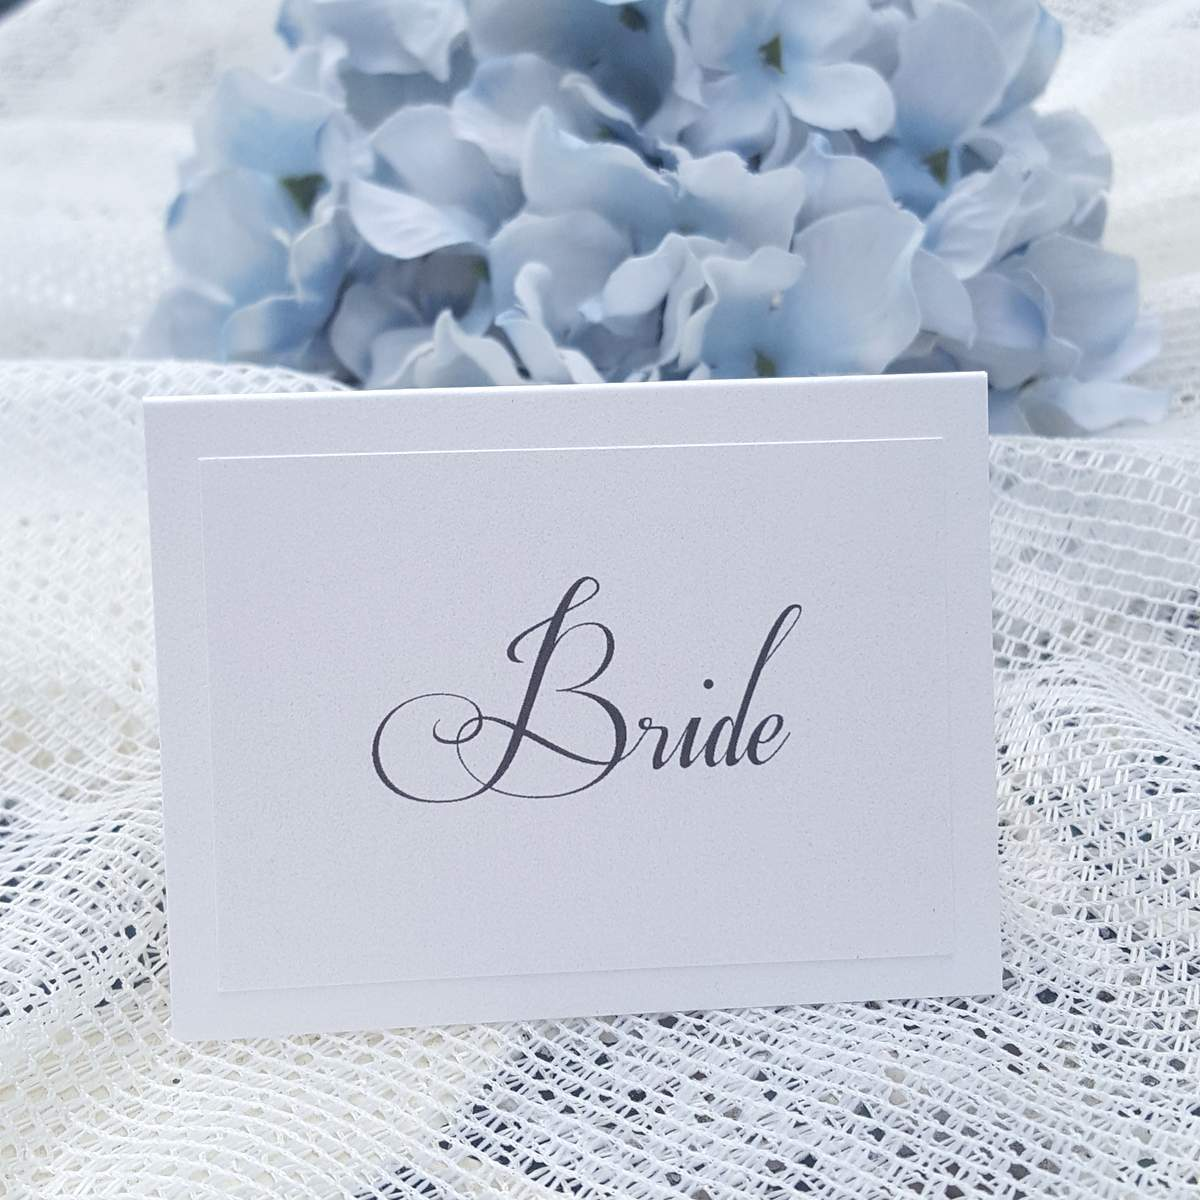 Elegant white wedding place card with Bride printed in a fancy calligraphy font